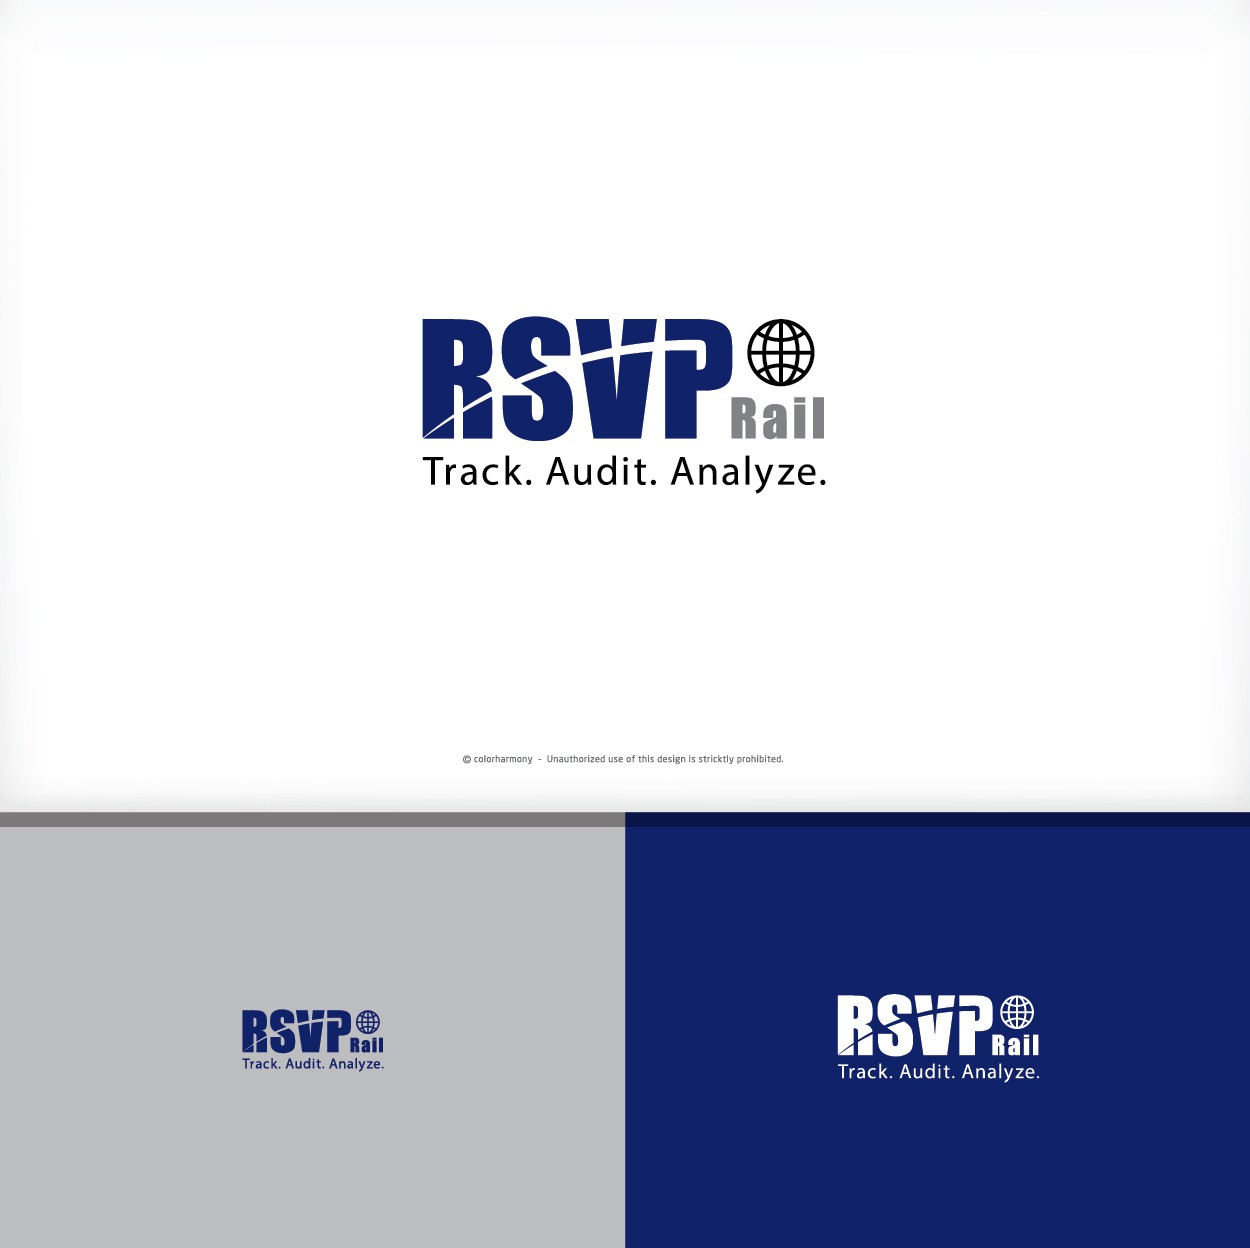 Create a professional logo for RSVP Rail